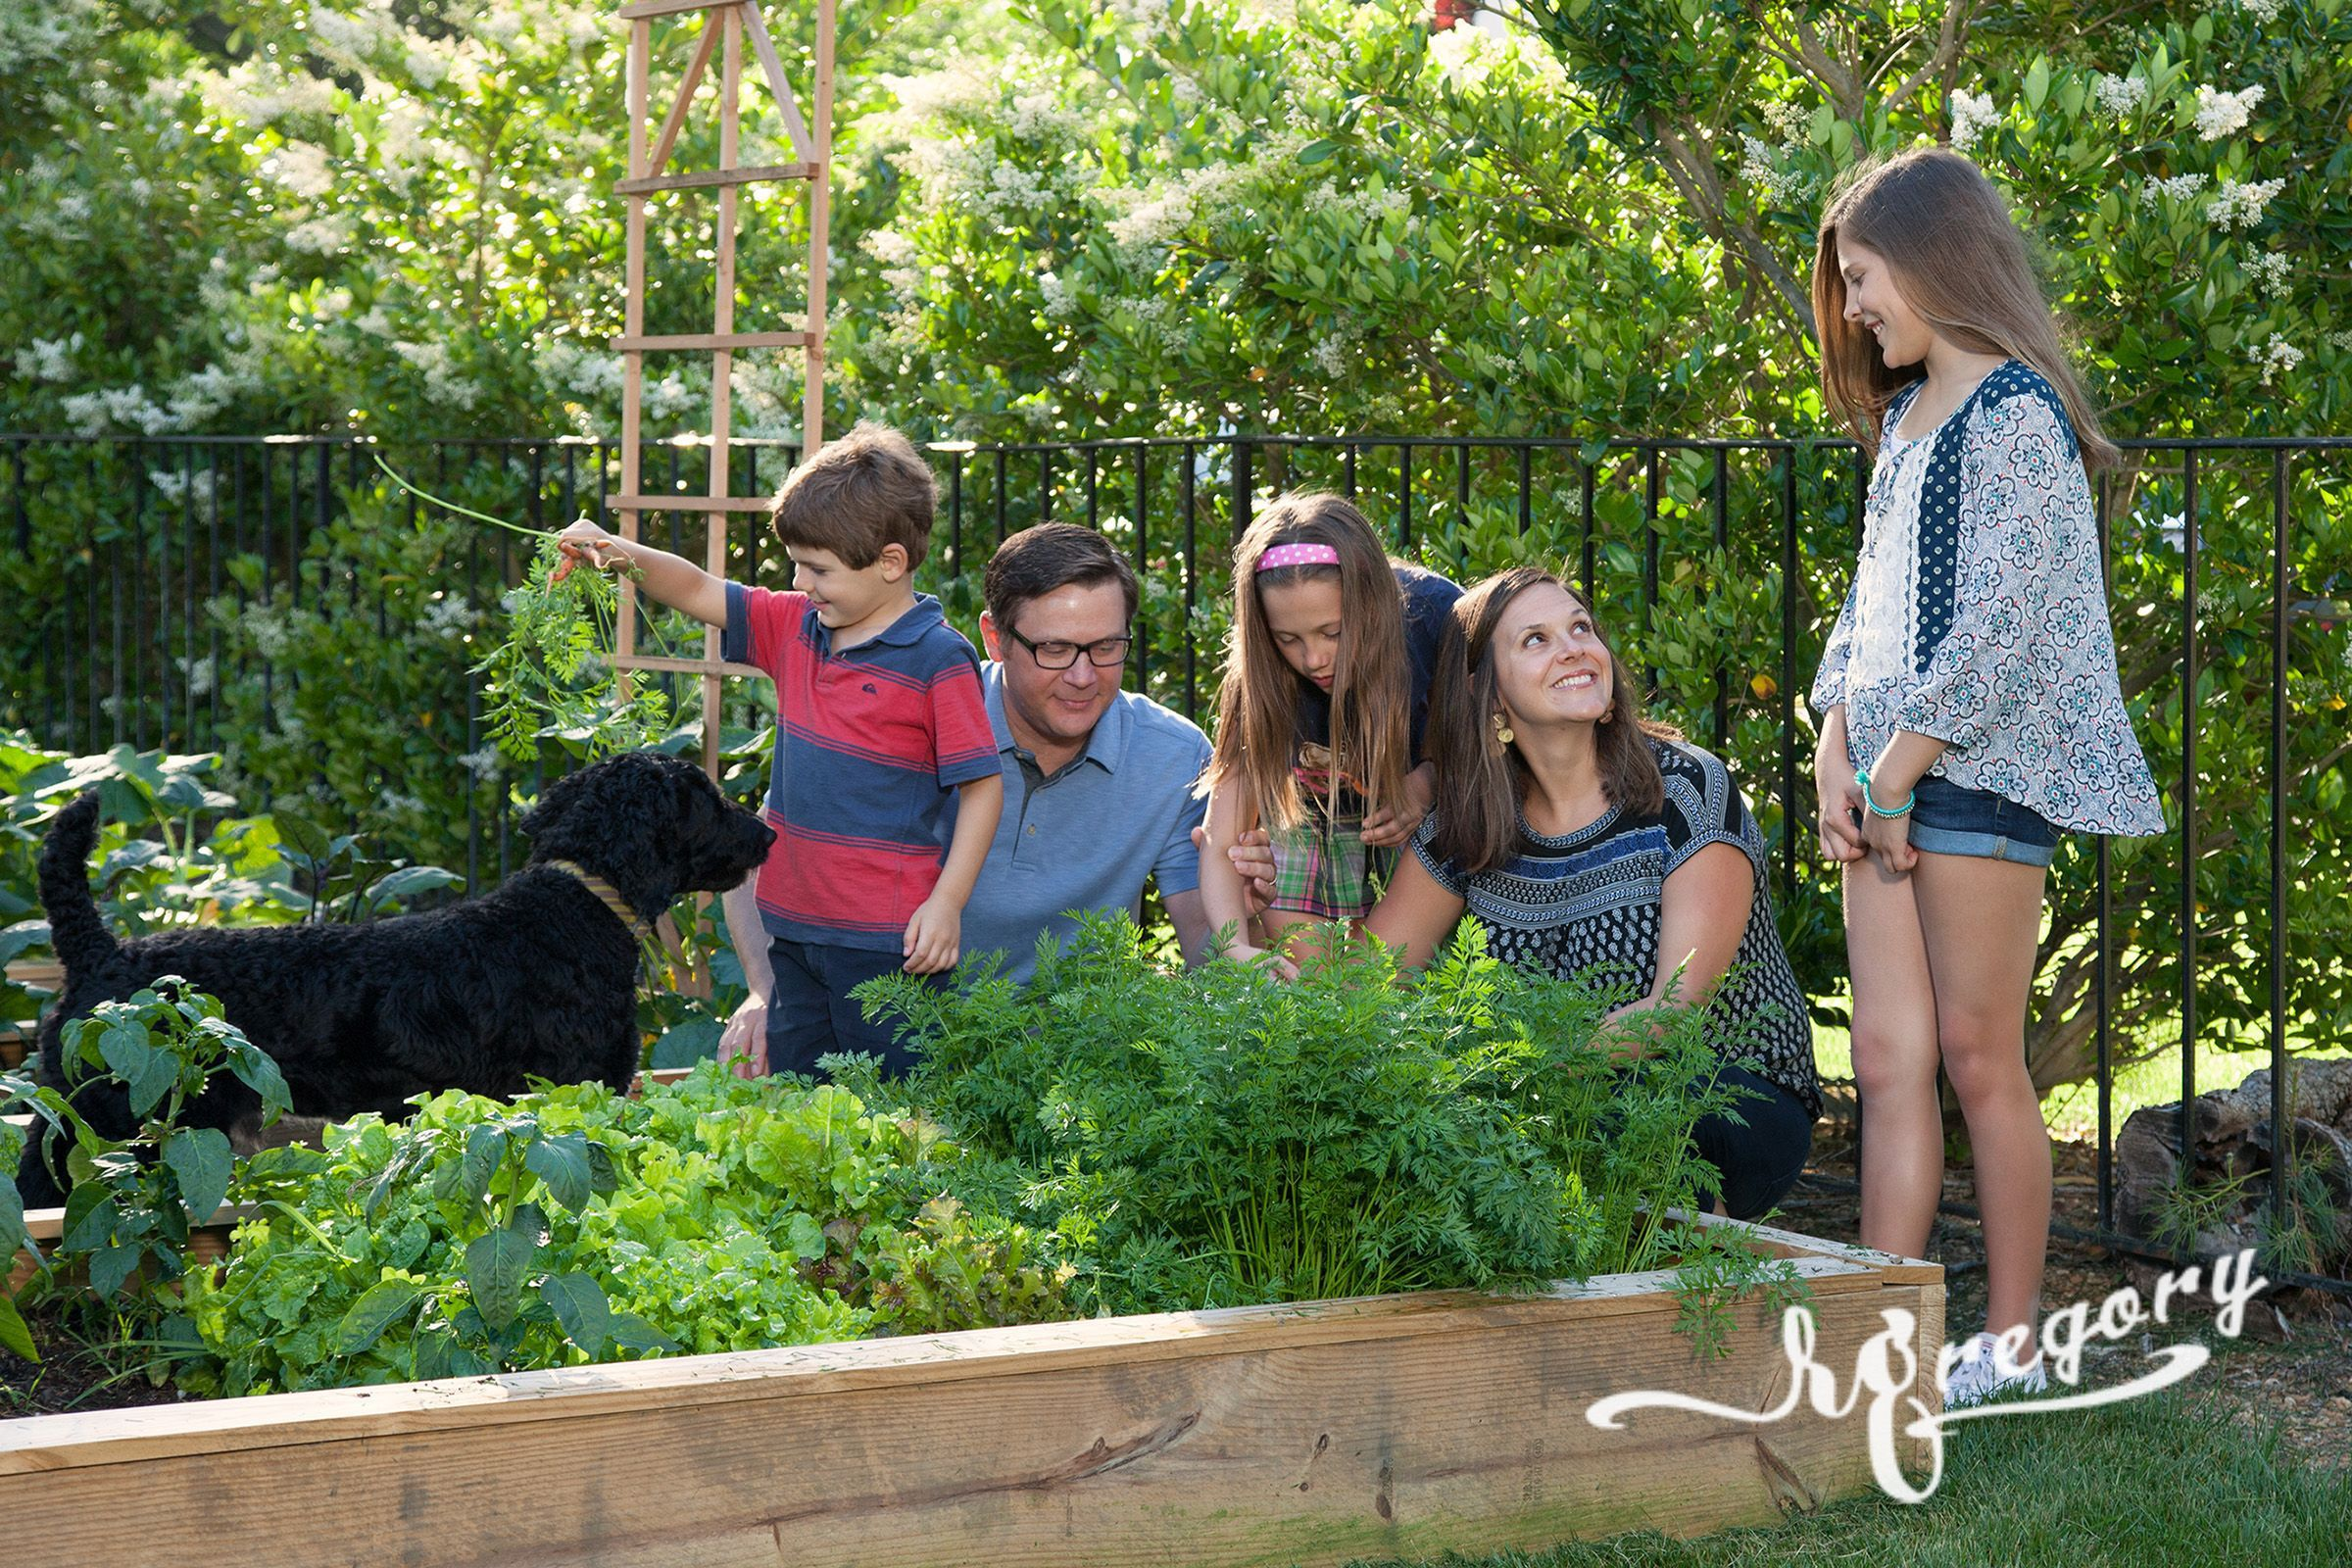 family gardening candid photo with children and pet dog